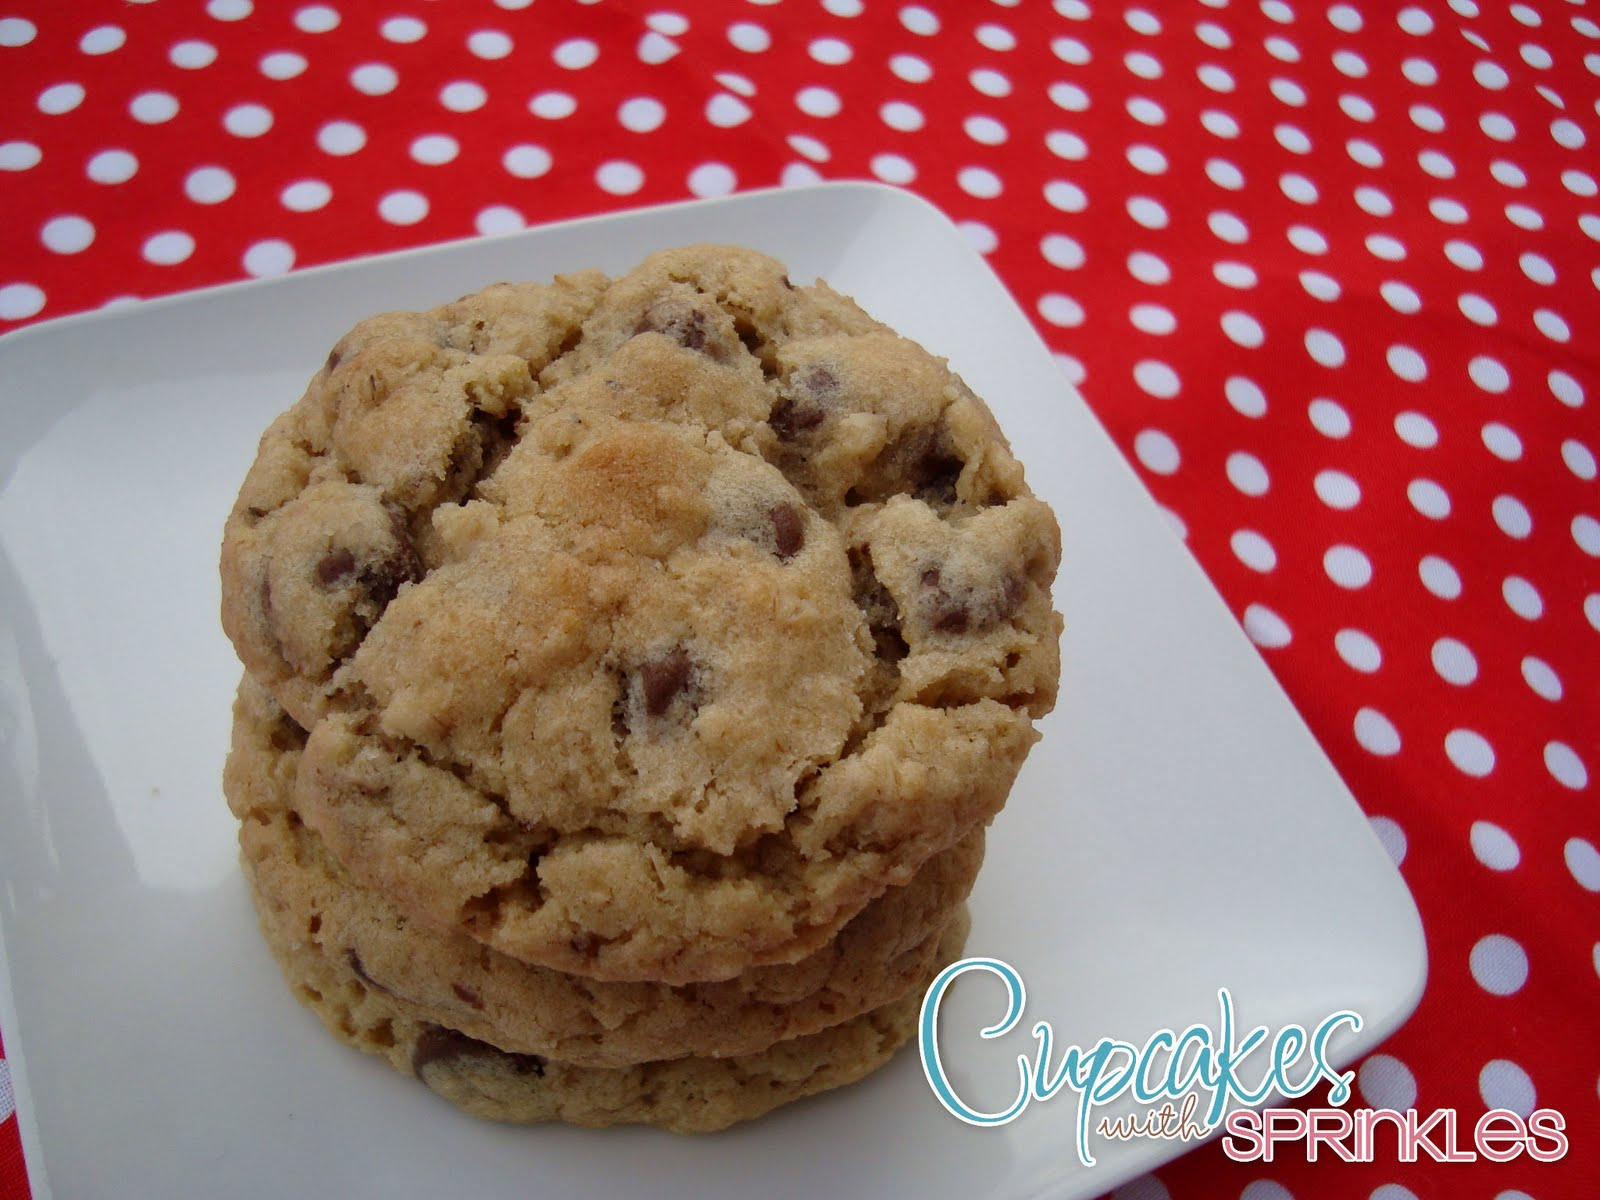 Cupcakes with Sprinkles: Oatmeal Chocolate Chip Cookies